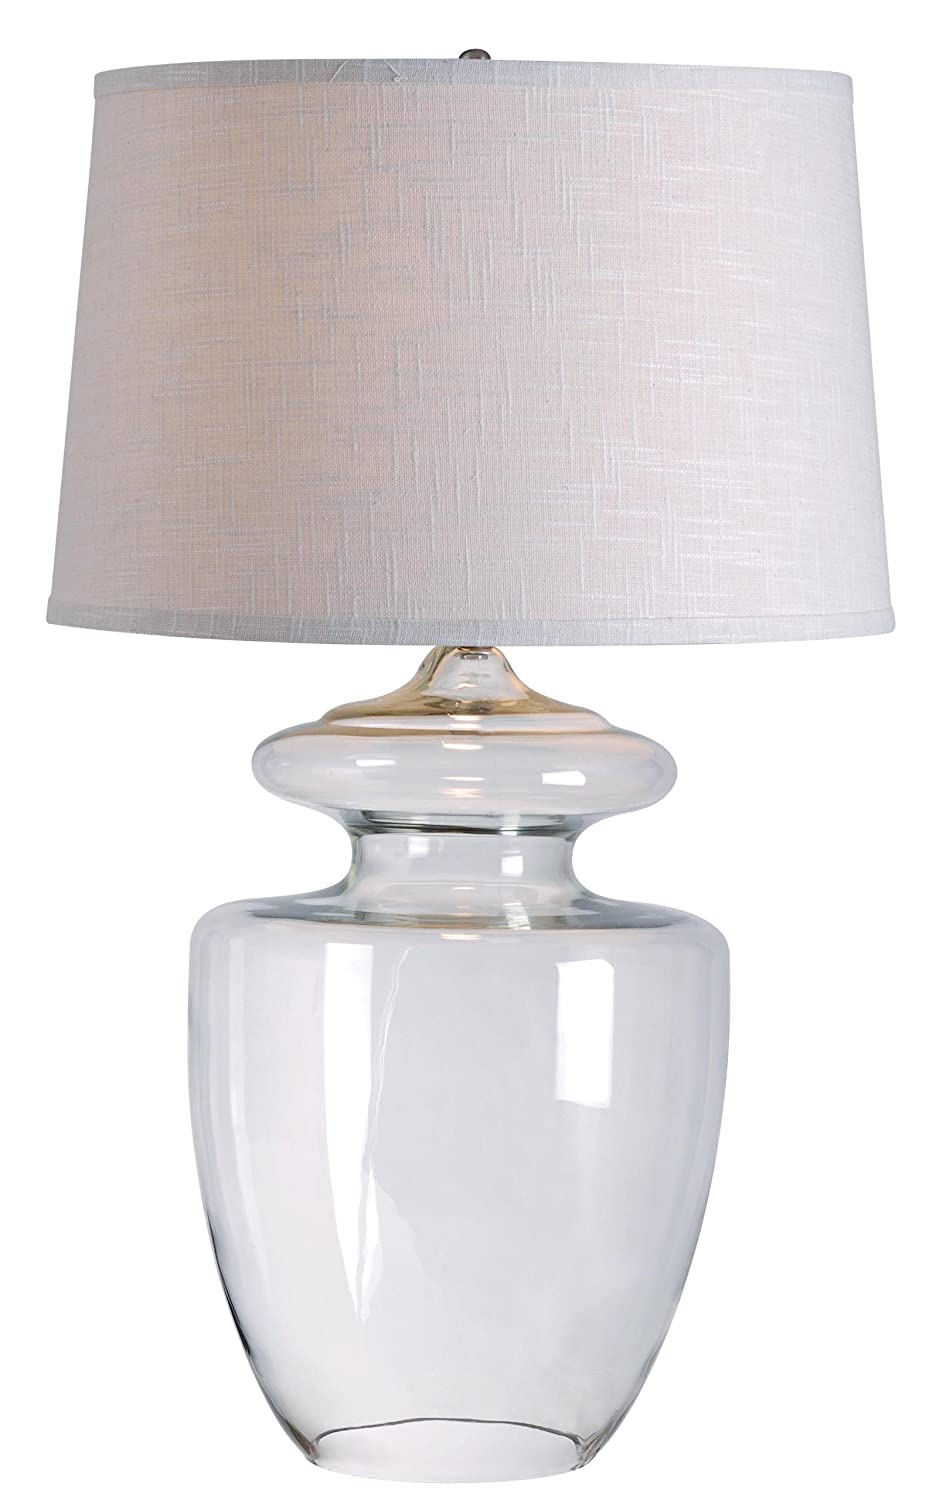 Kenroy Home 32260CLR Apothecary Table Lamp, Clear Glass Finish   Lamps For  Living Room   Amazon.com